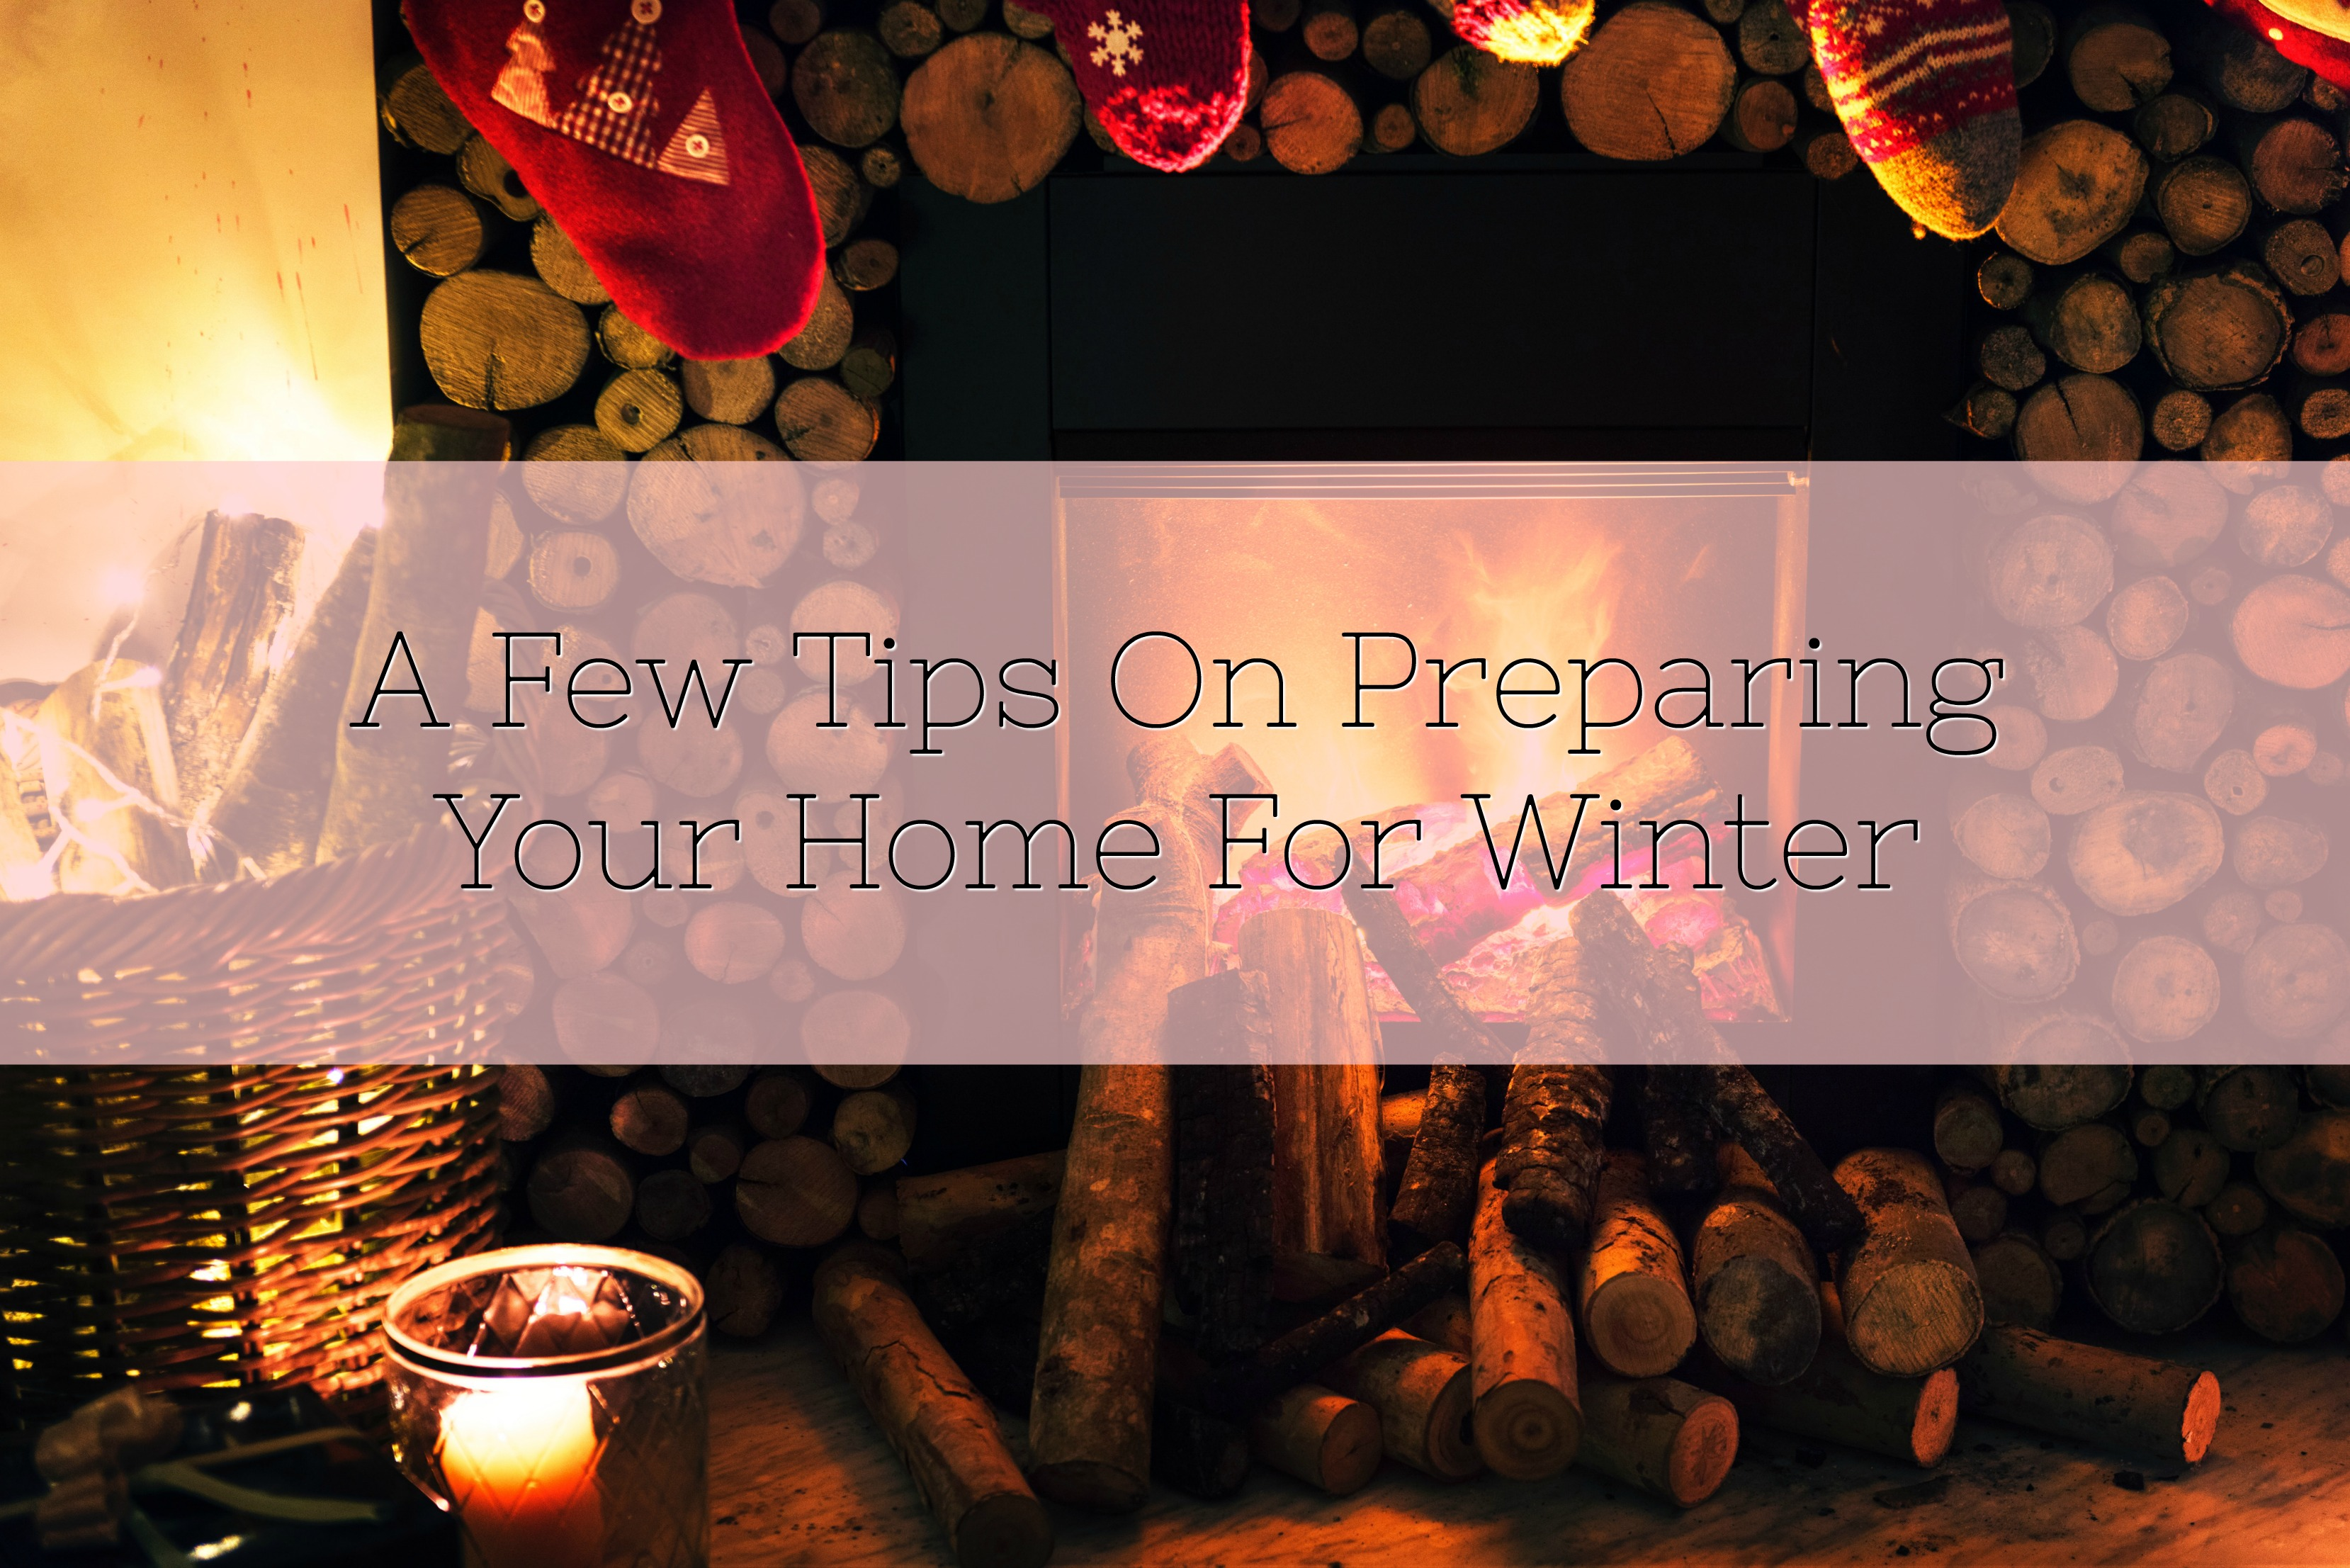 A Few Tips On Preparing Your Home For Winter title